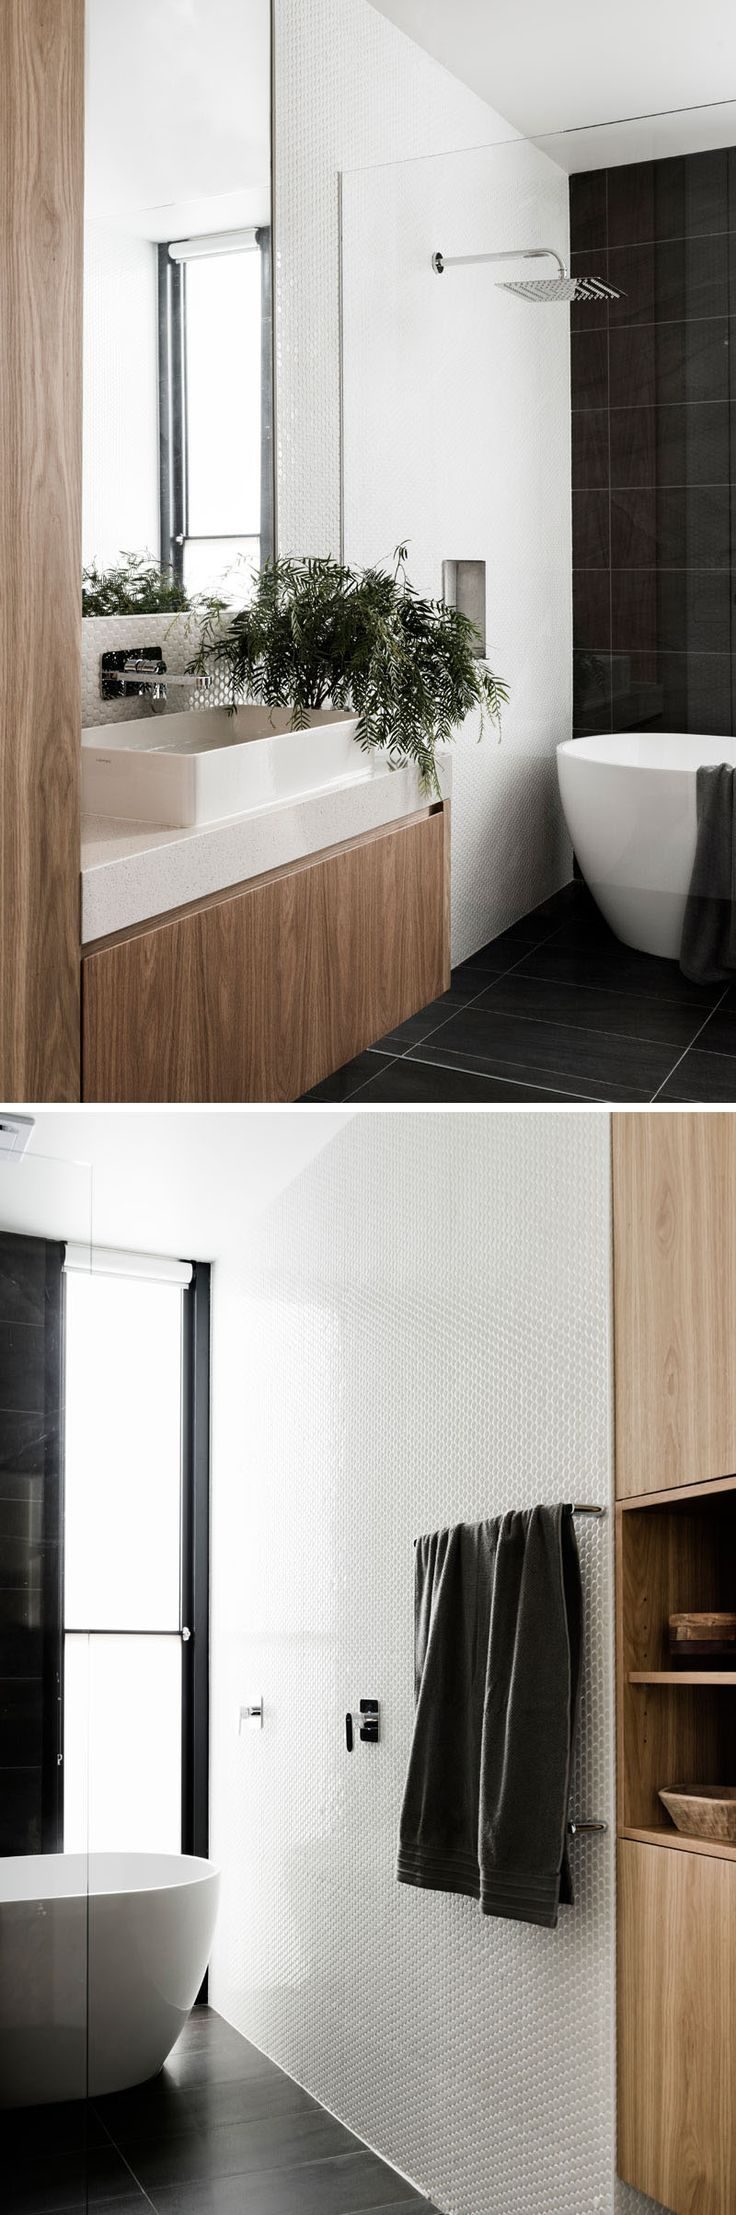 In this modern bathroom, large dark tiles have been paired with small white tiles and touches of wood to create a contemporary look.